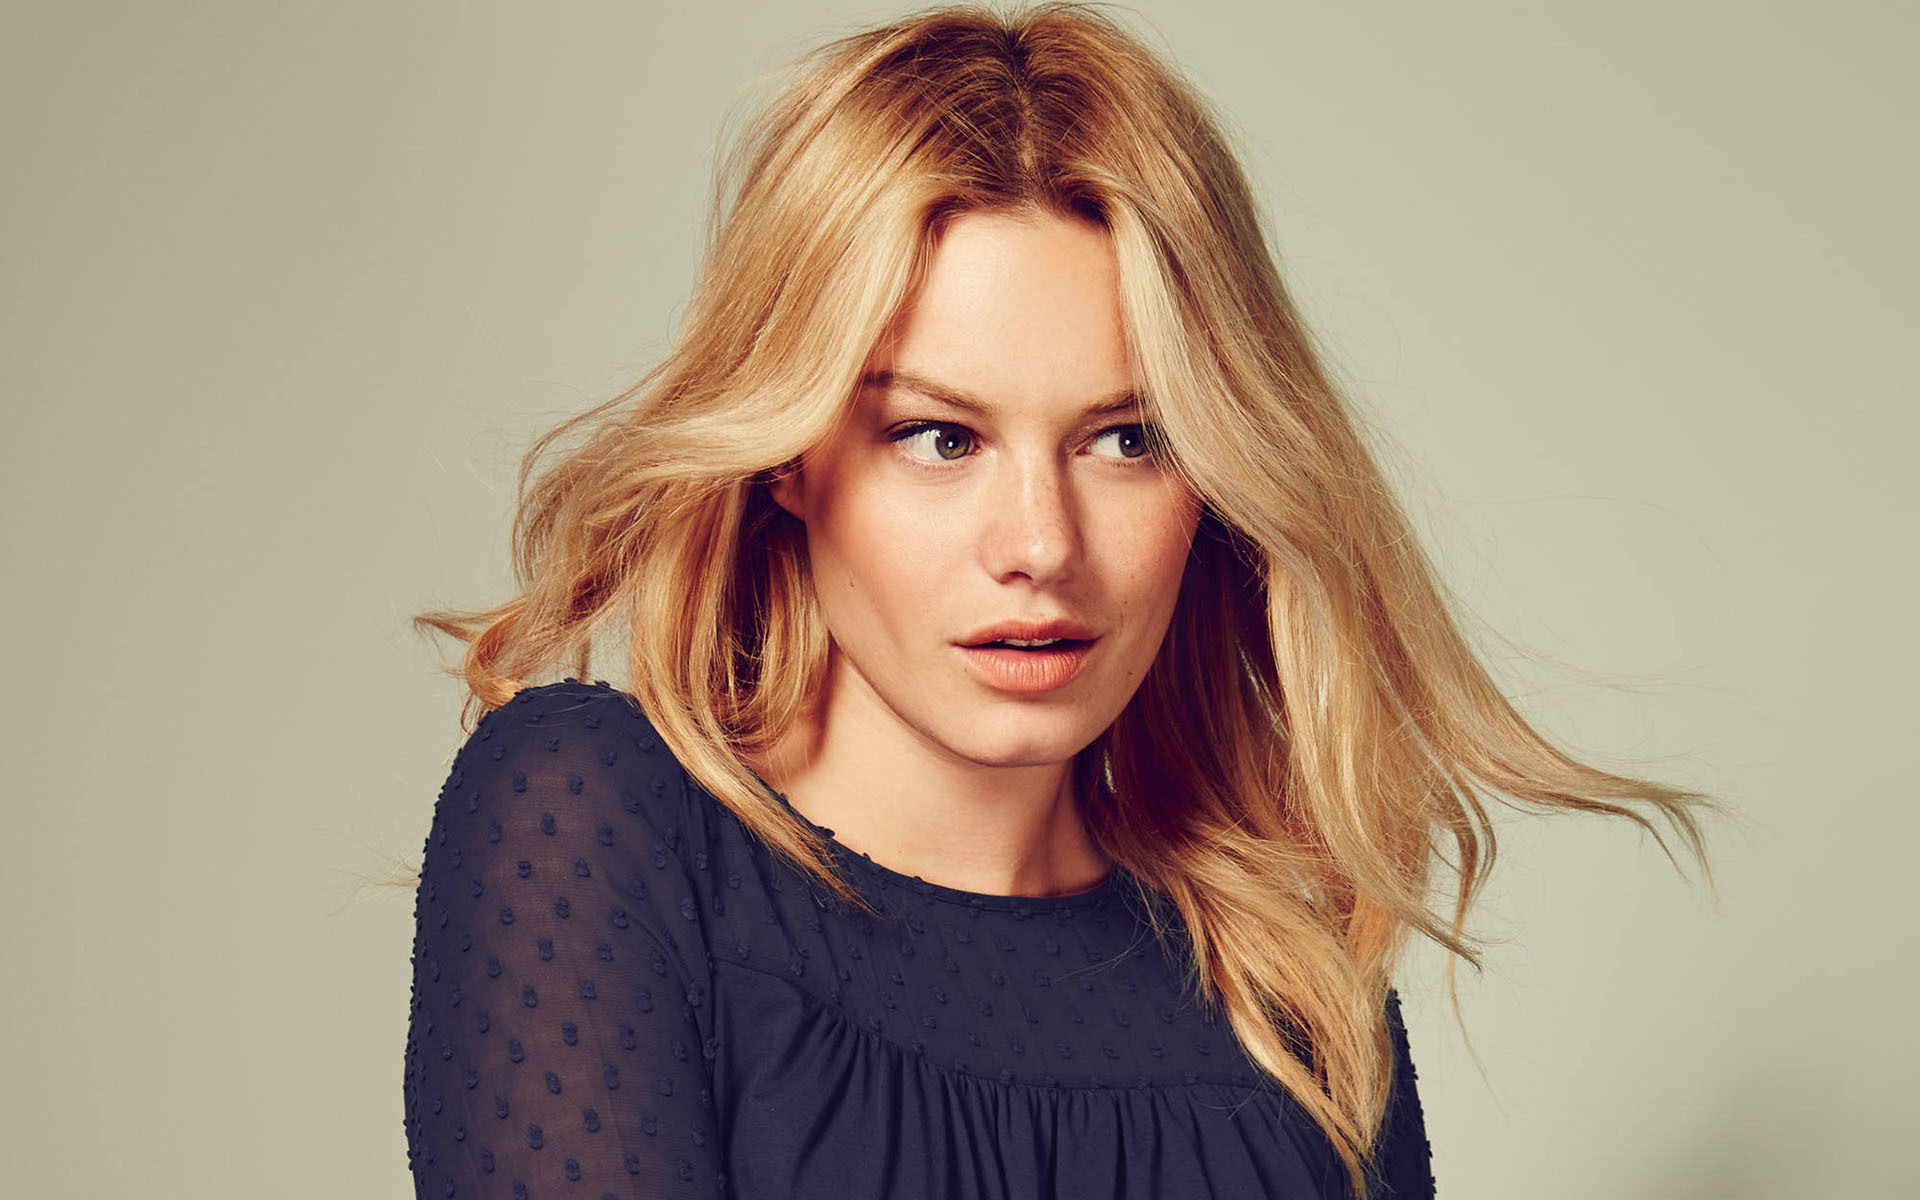 Camille Rowe 4K